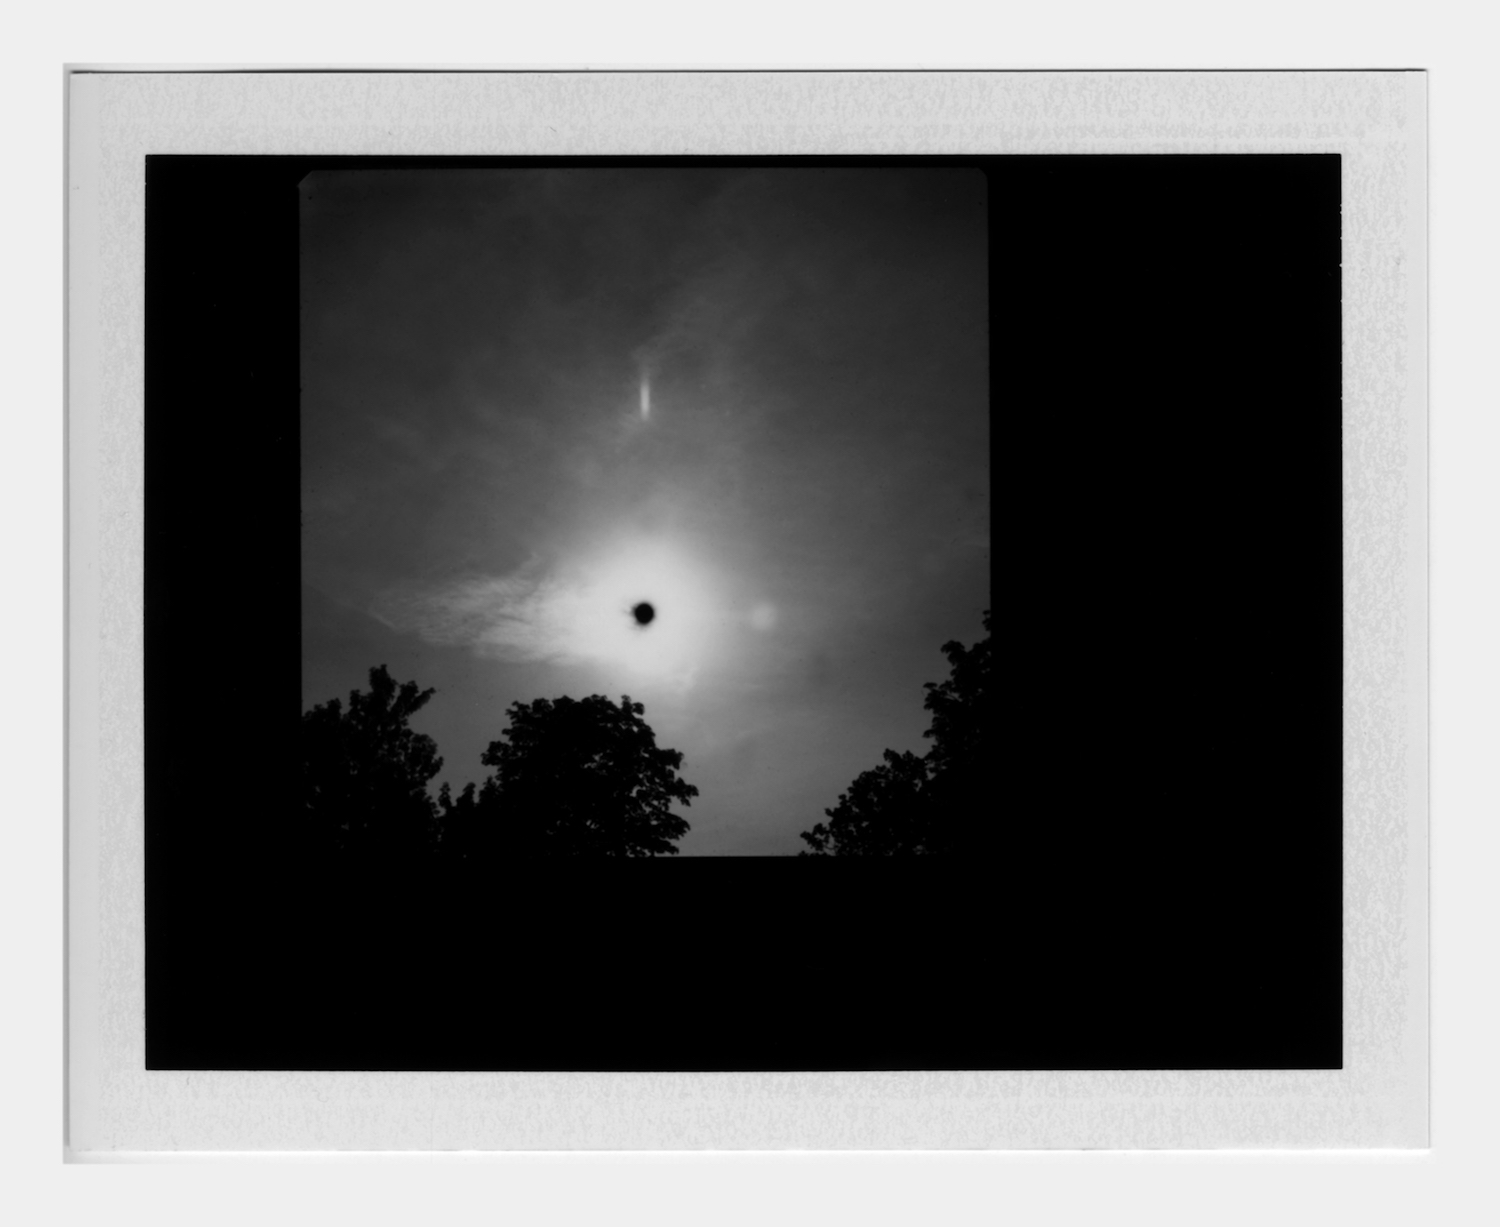 Transit of Venus (2) 2012 Framed Polaroid 22 x 24 cm